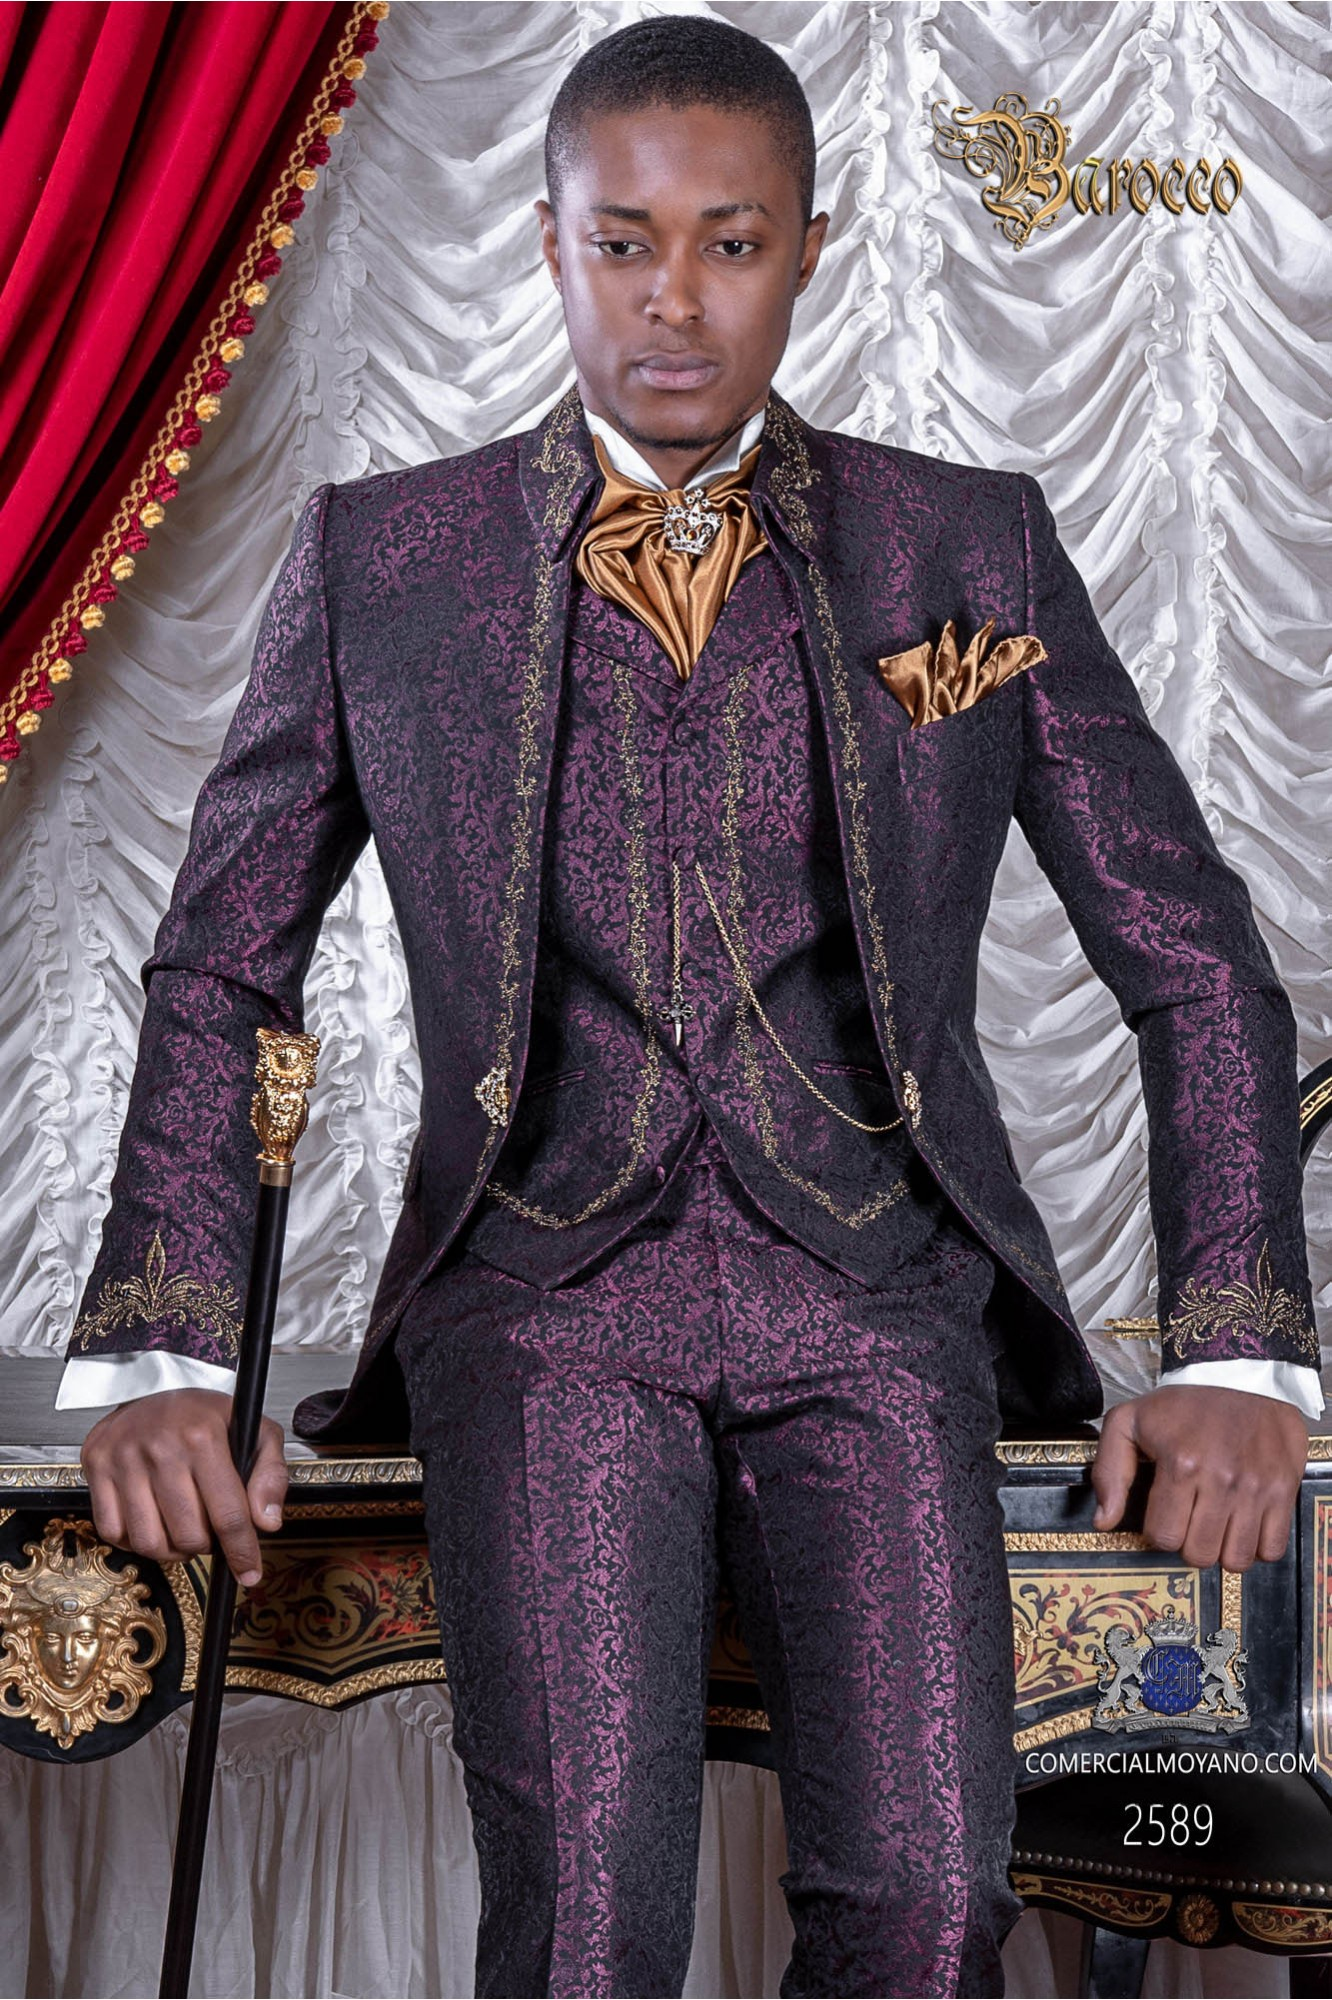 Baroque groom suit, vintage Napoleon collar frock coat in purple jacquard fabric with golden embroidery and crystal clasp